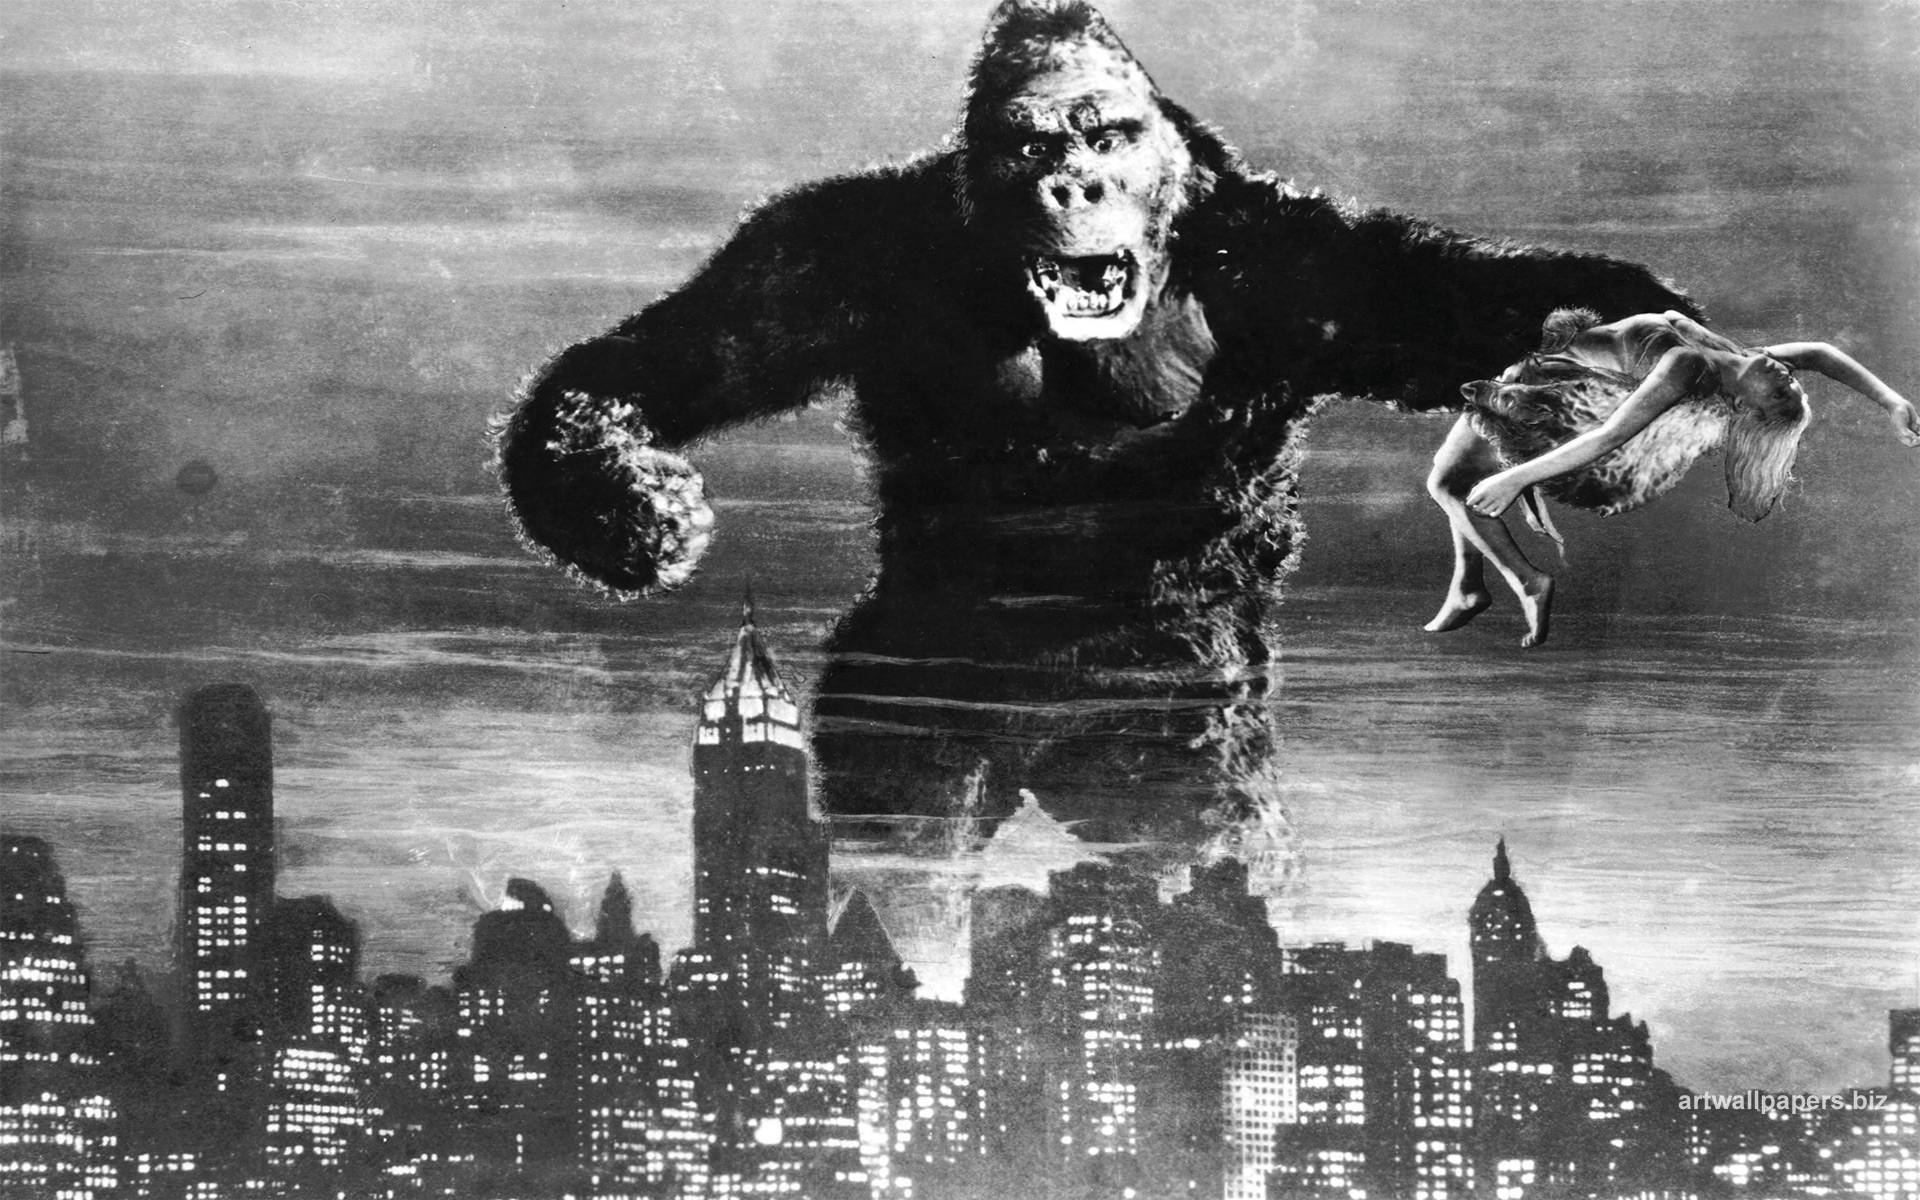 Free Download Kong Wallpaper Wallpaper For King Kong King Kong Is A 1933 1920x1200 For Your Desktop Mobile Tablet Explore 49 King Kong Wallpaper 1933 King Kong Wallpaper 1933